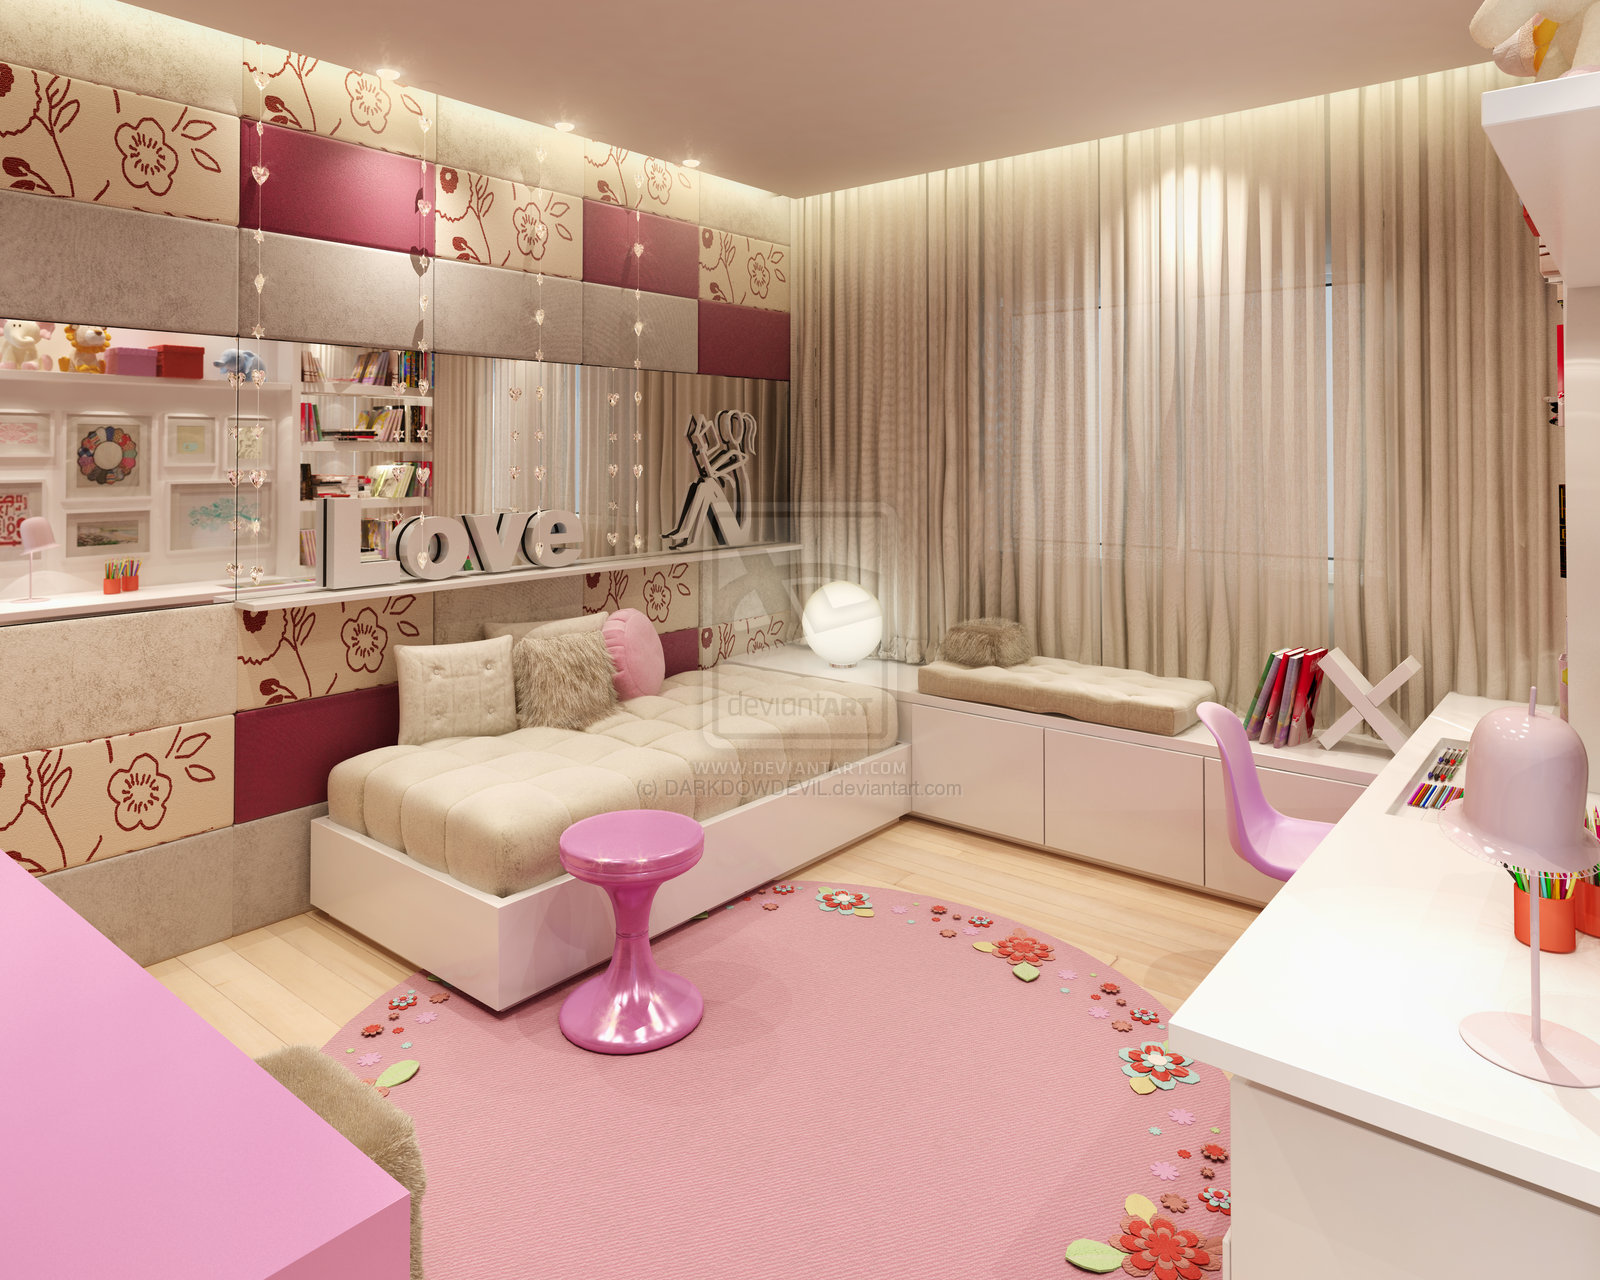 girly bedroom design ideas azee On girly bedrooms